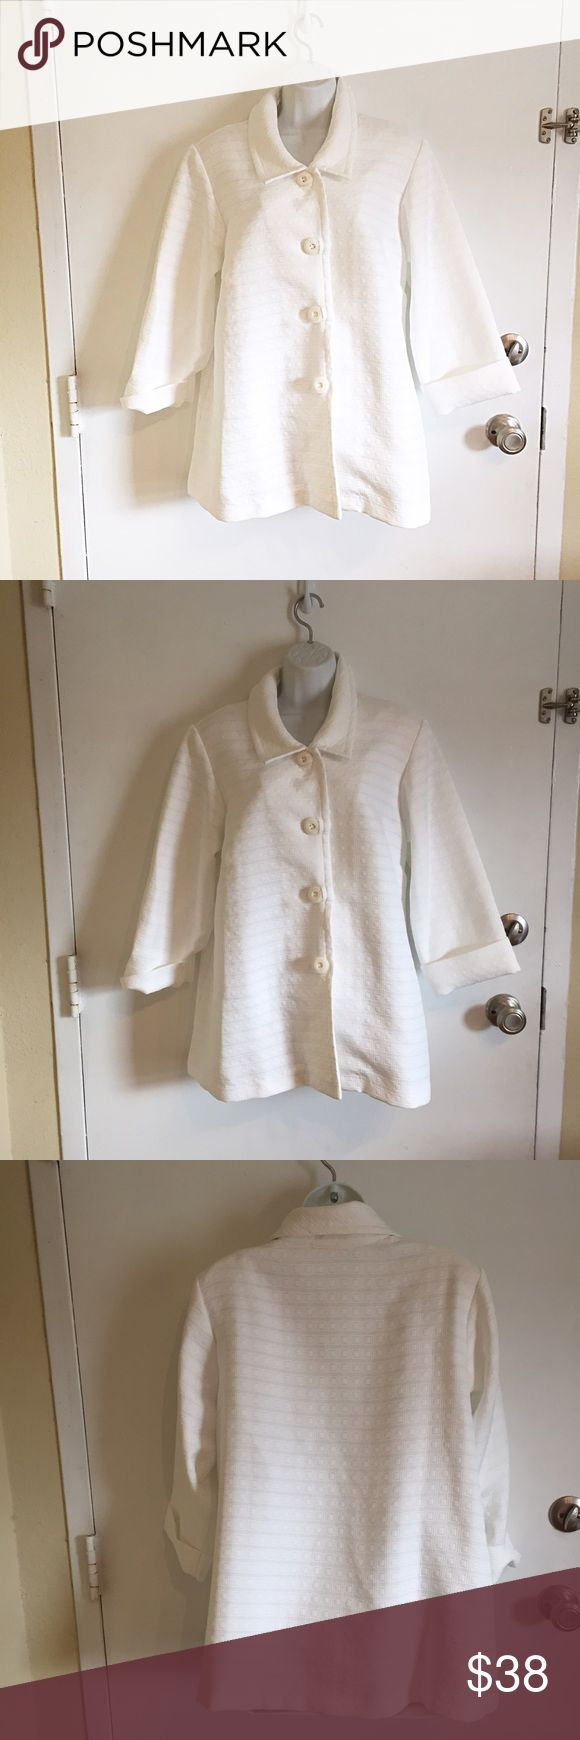 NWT Simonton Says White Button Up Coat New with tags Simonton Says from QVC lightweight white button up coat. Has a cool square textured pattern. Size large #new #nwt #simontonsays #qvc #white #textured #large #buttonup #coat #jacket #punkydoodle  No modeling Smoke and pet free home I do discount bundles Simonton Says Jackets & Coats